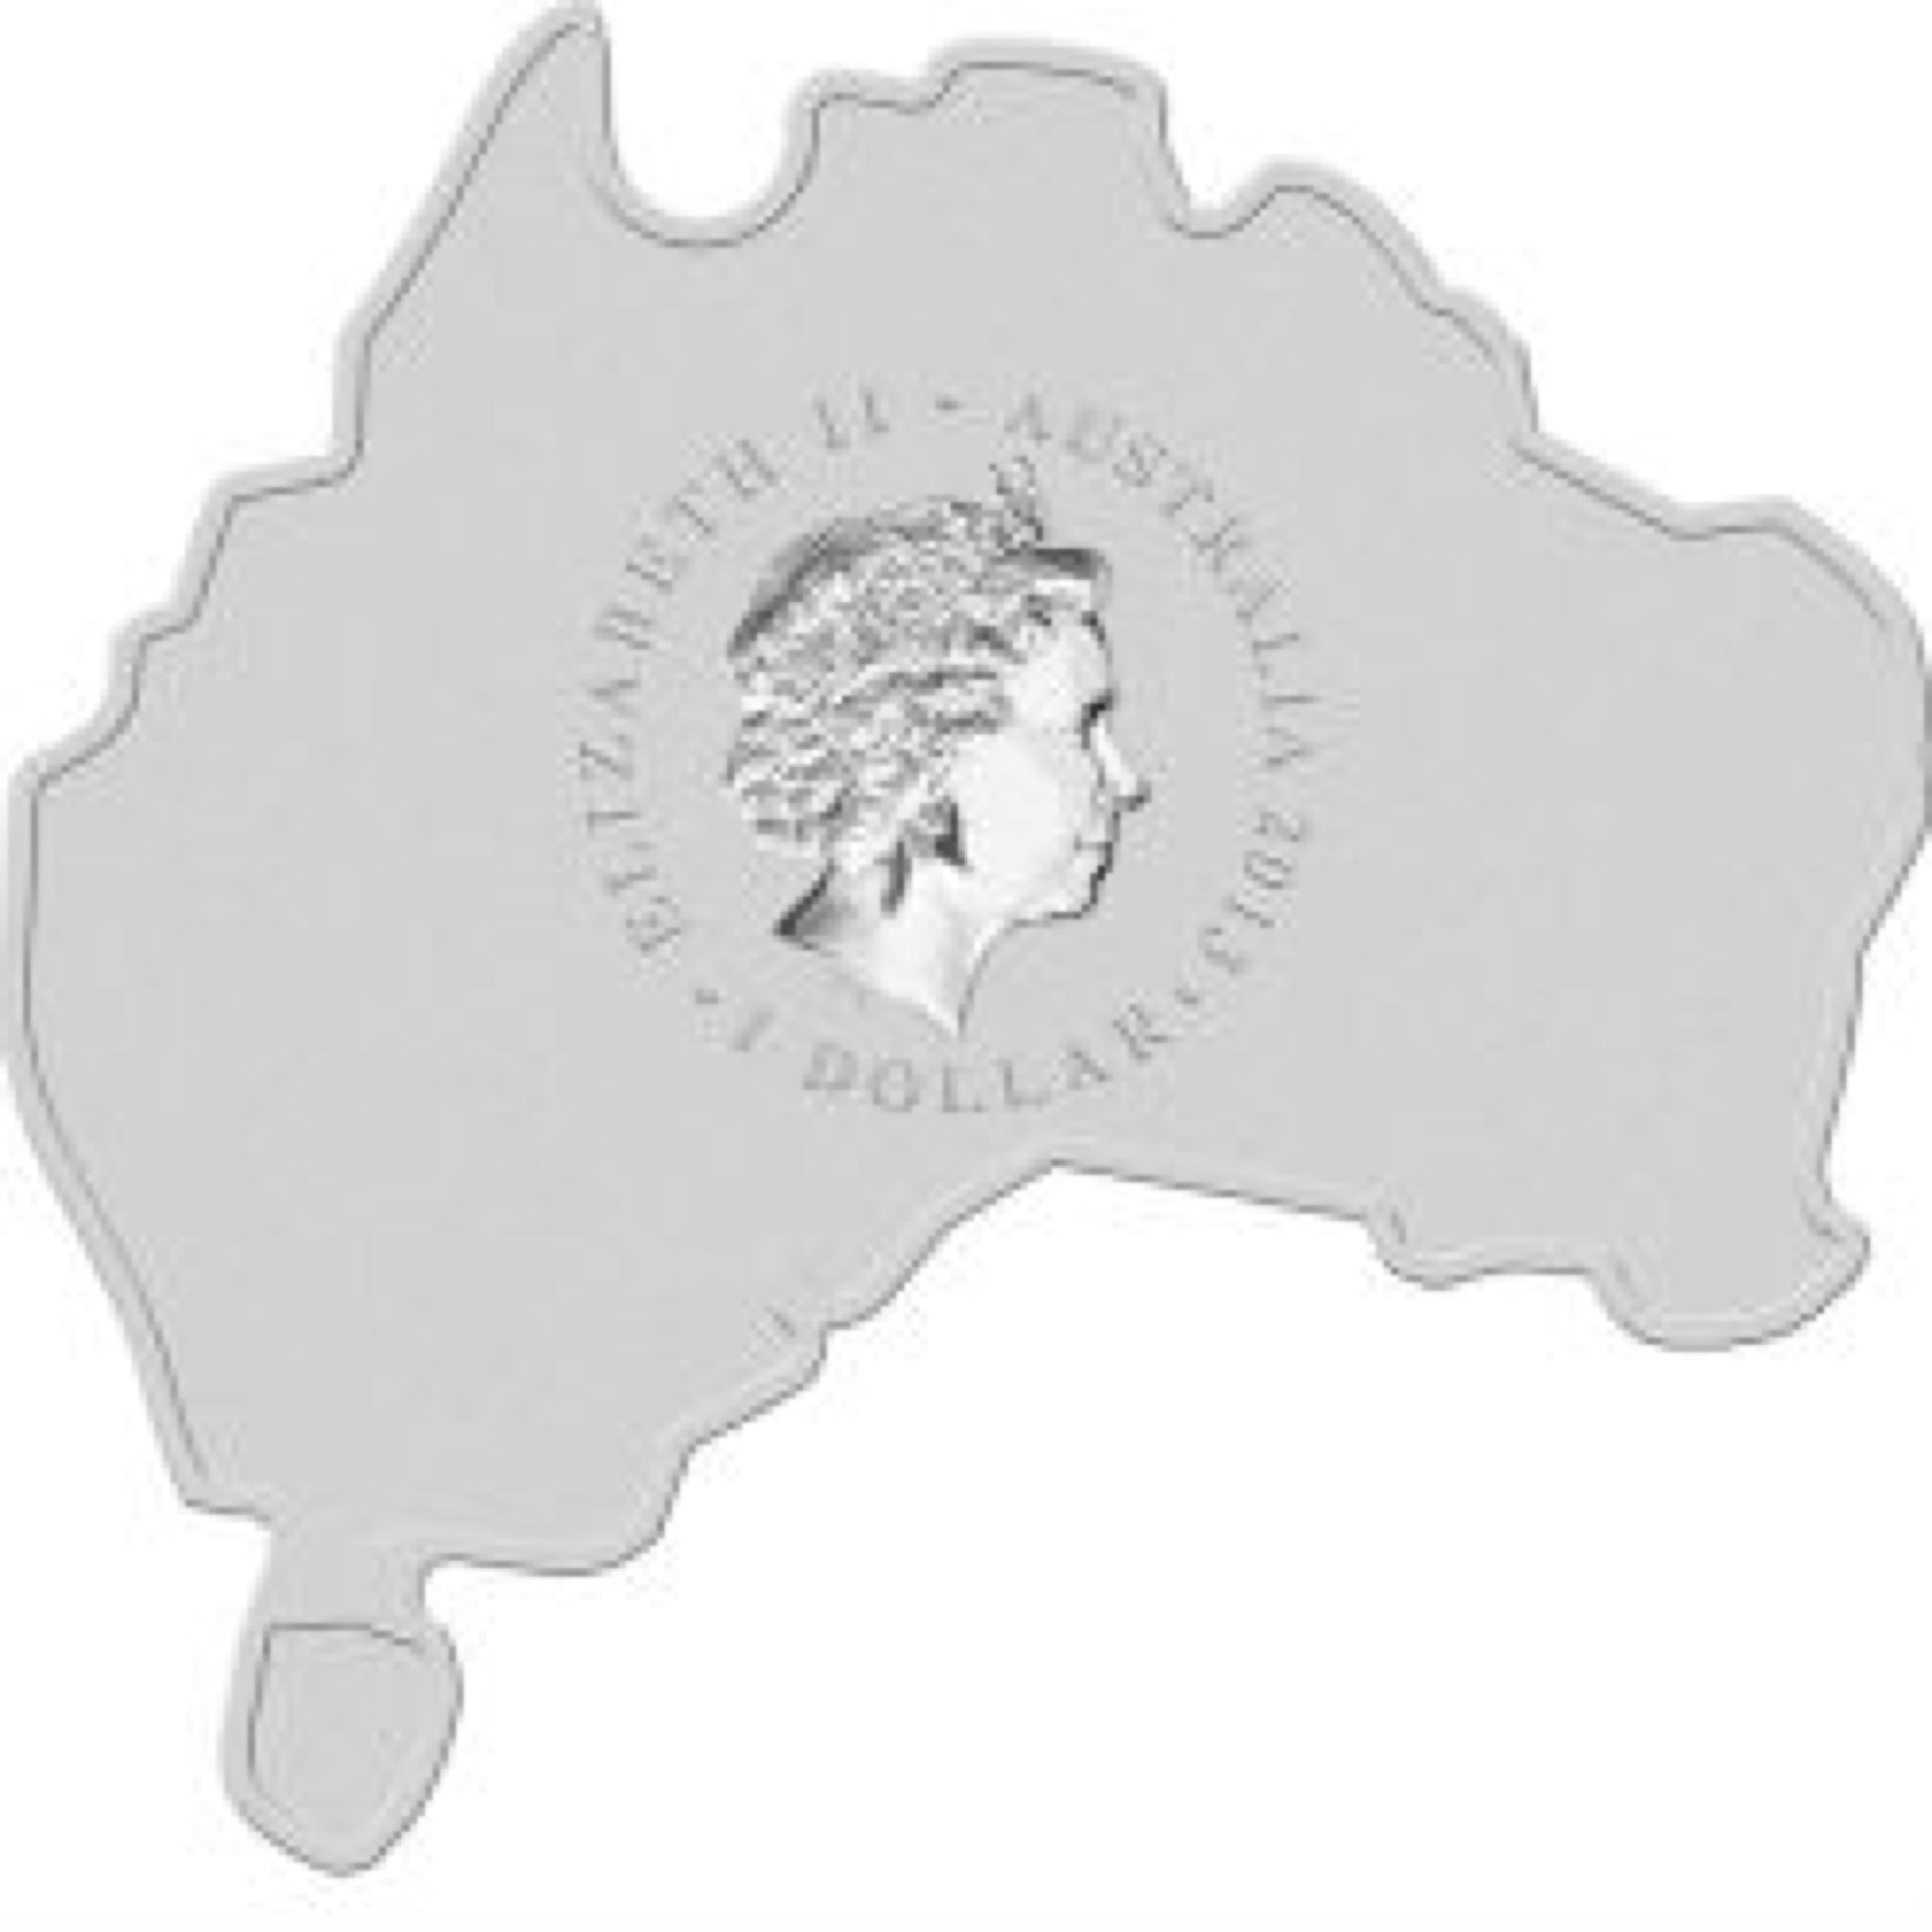 2013 Kangaroo 1oz Map Shape Coin - $1 (2013) back image (back cover, second image)